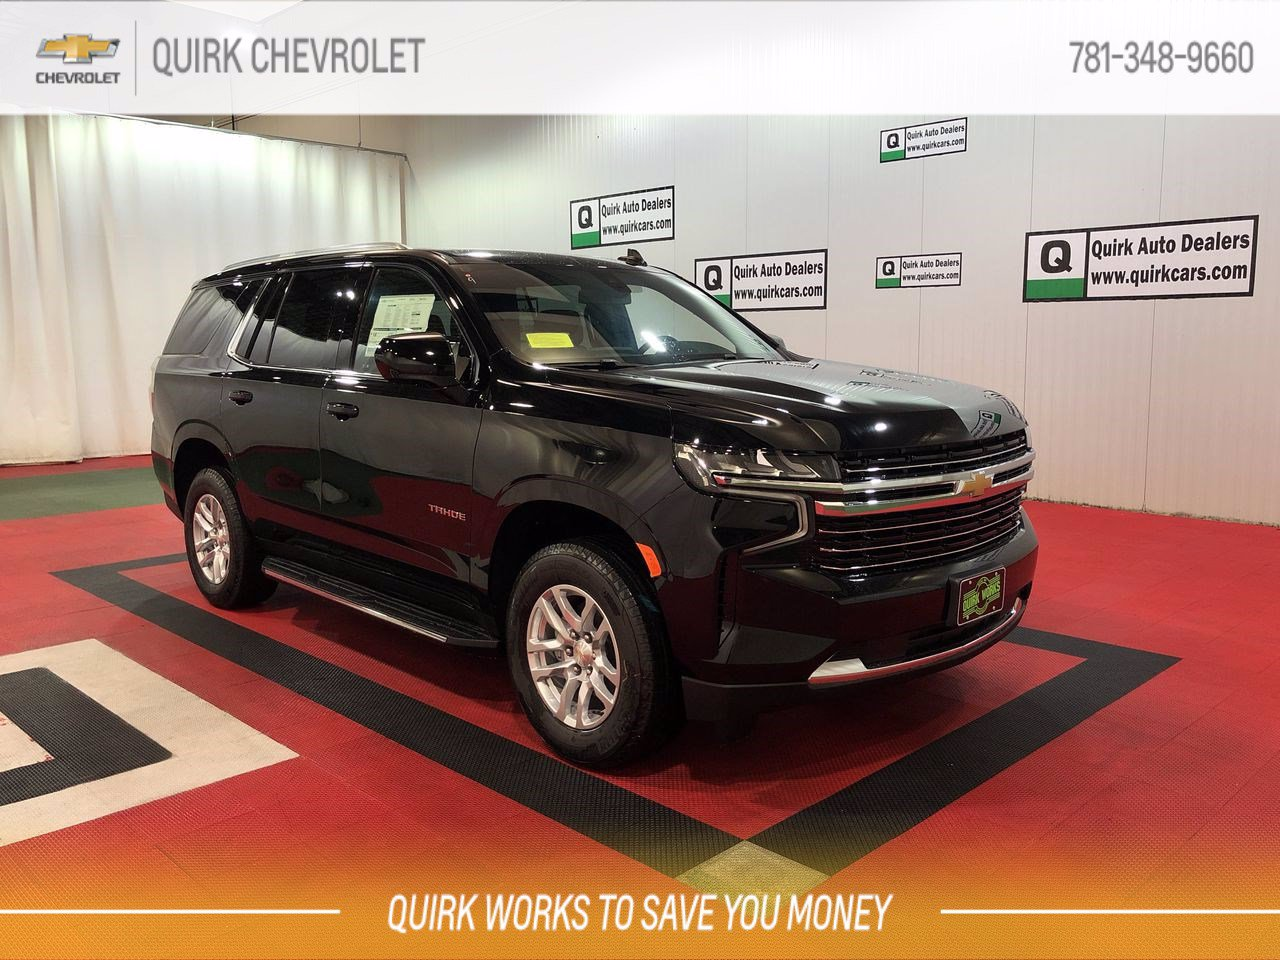 2021 Chevrolet Tahoe 4x4 LT, leather - ALL NEW 2021